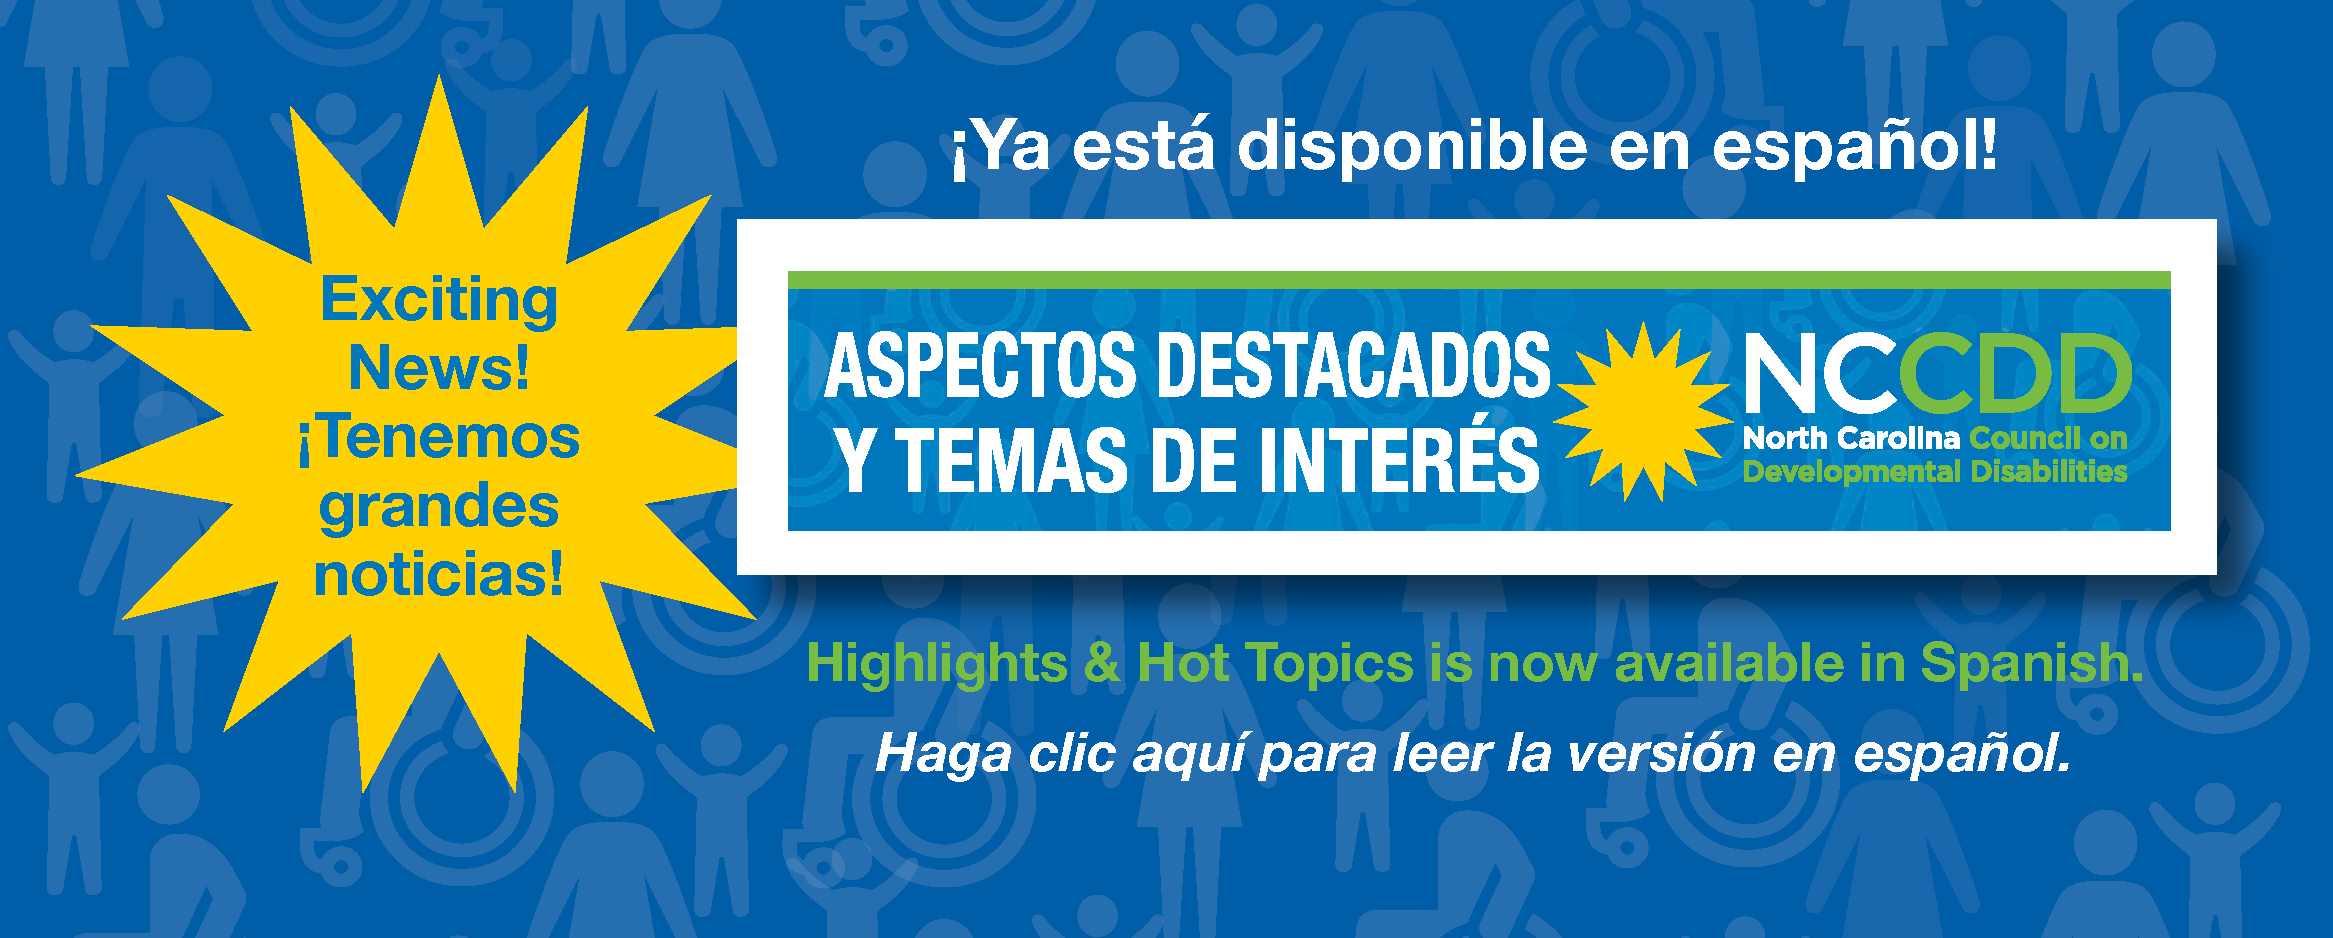 Highlights & Hot Topics is now available in Spanish. Enero 2019 – Aspectos destacados y temas de interés ¡Ya está disponible en español!